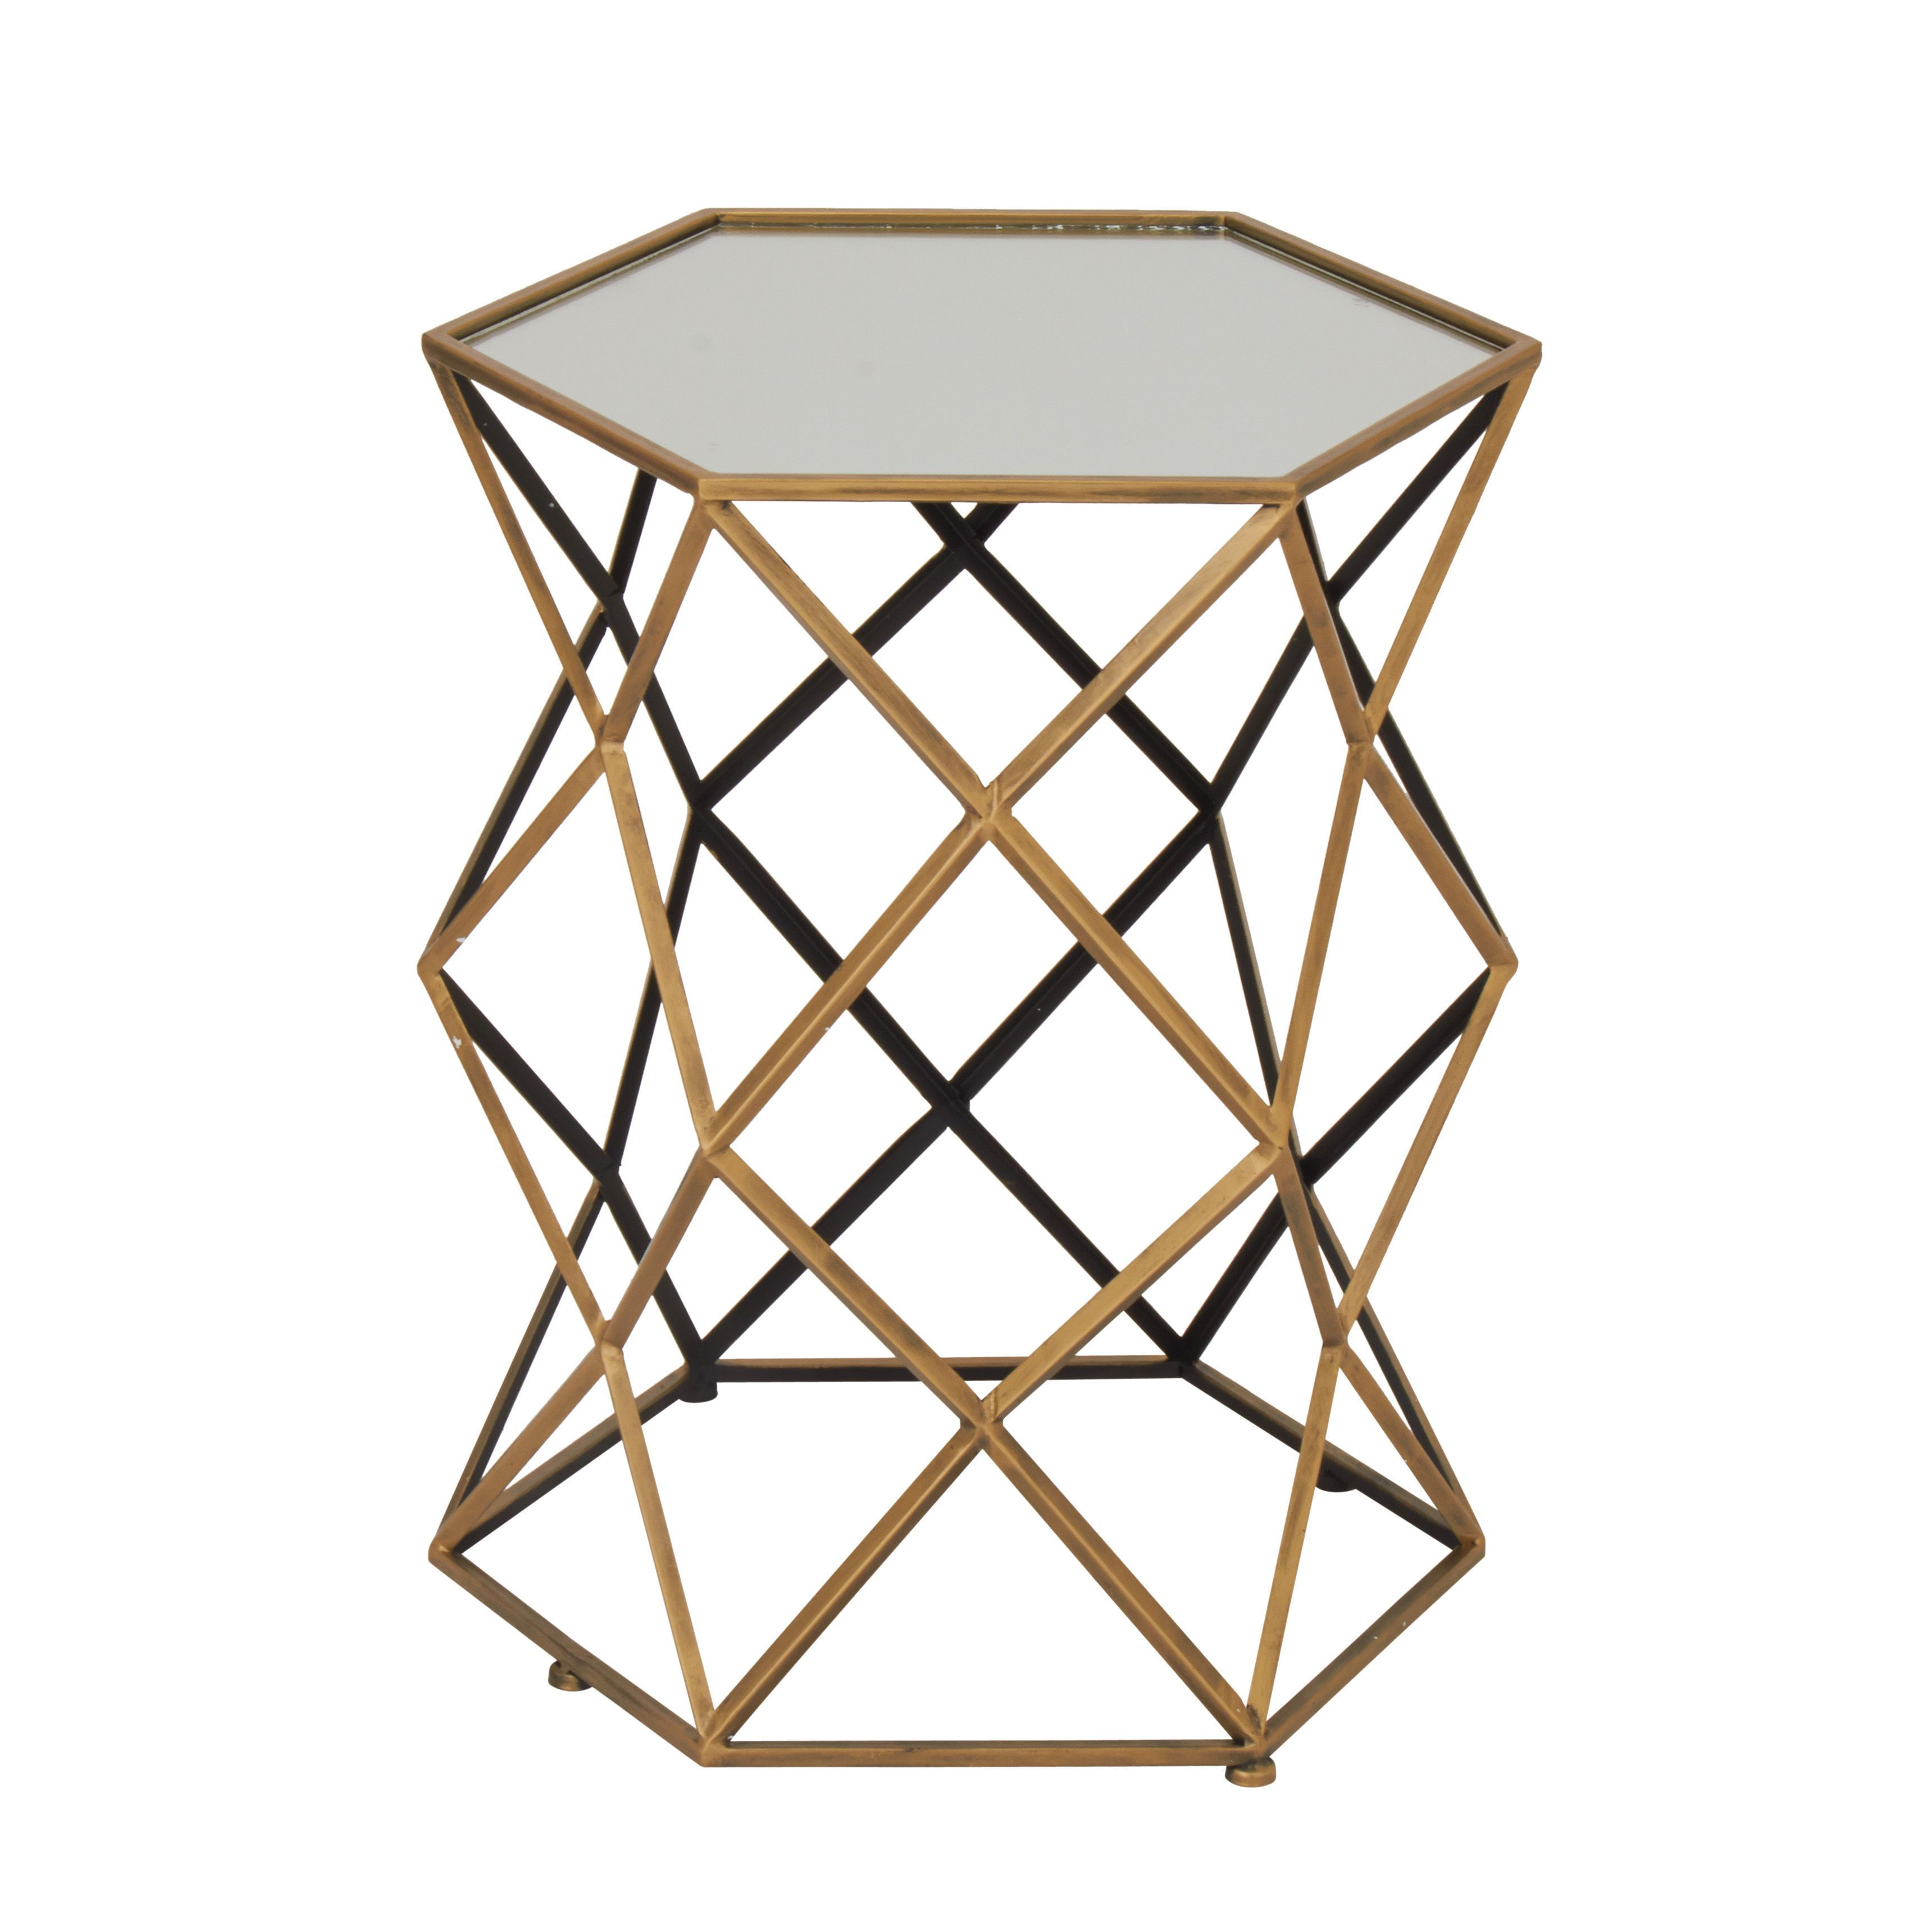 studio benzara metal mirror accent table multi black mirrored galvanized side slim console ikea target circular outside furniture silver drum large wood coffee cabinet drawers